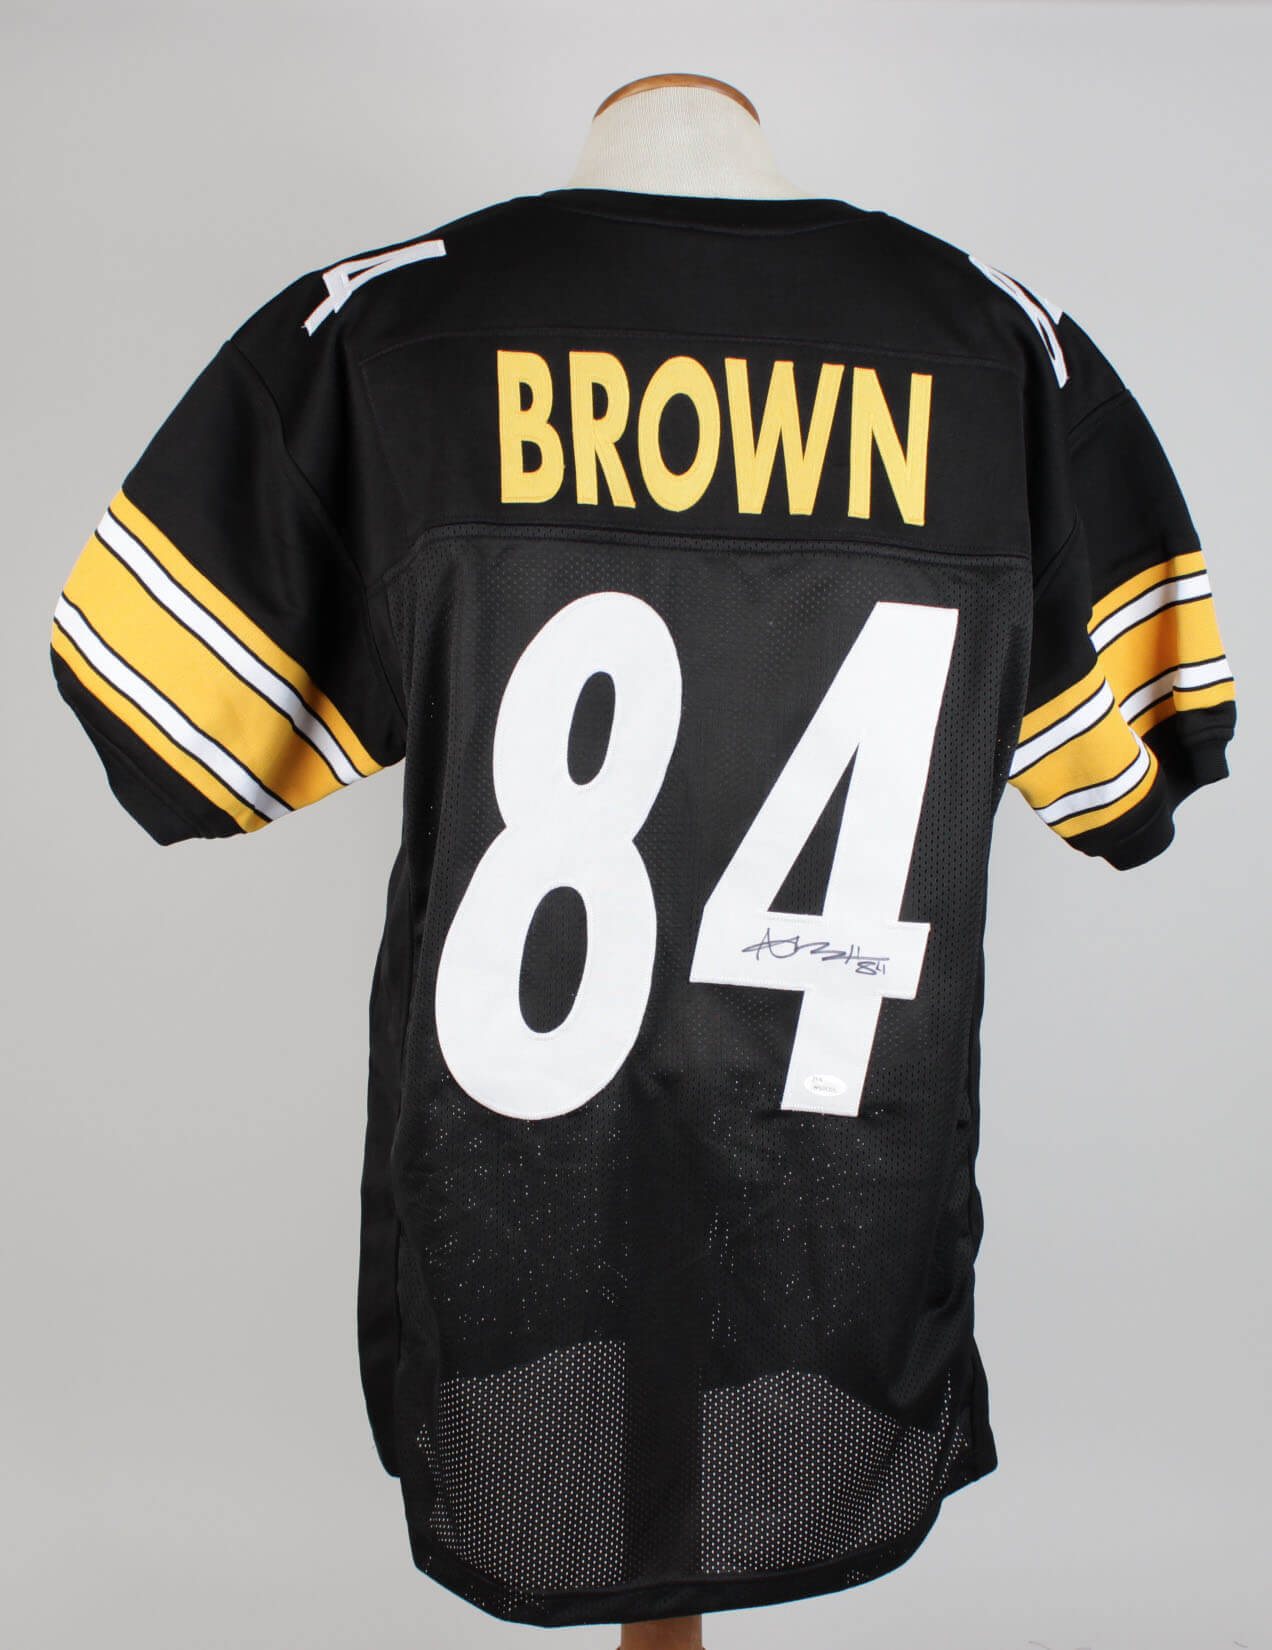 Antonio Brown Steelers Signed  Inscribed (84) Home Jersey Signature Grades 9-1084027_01